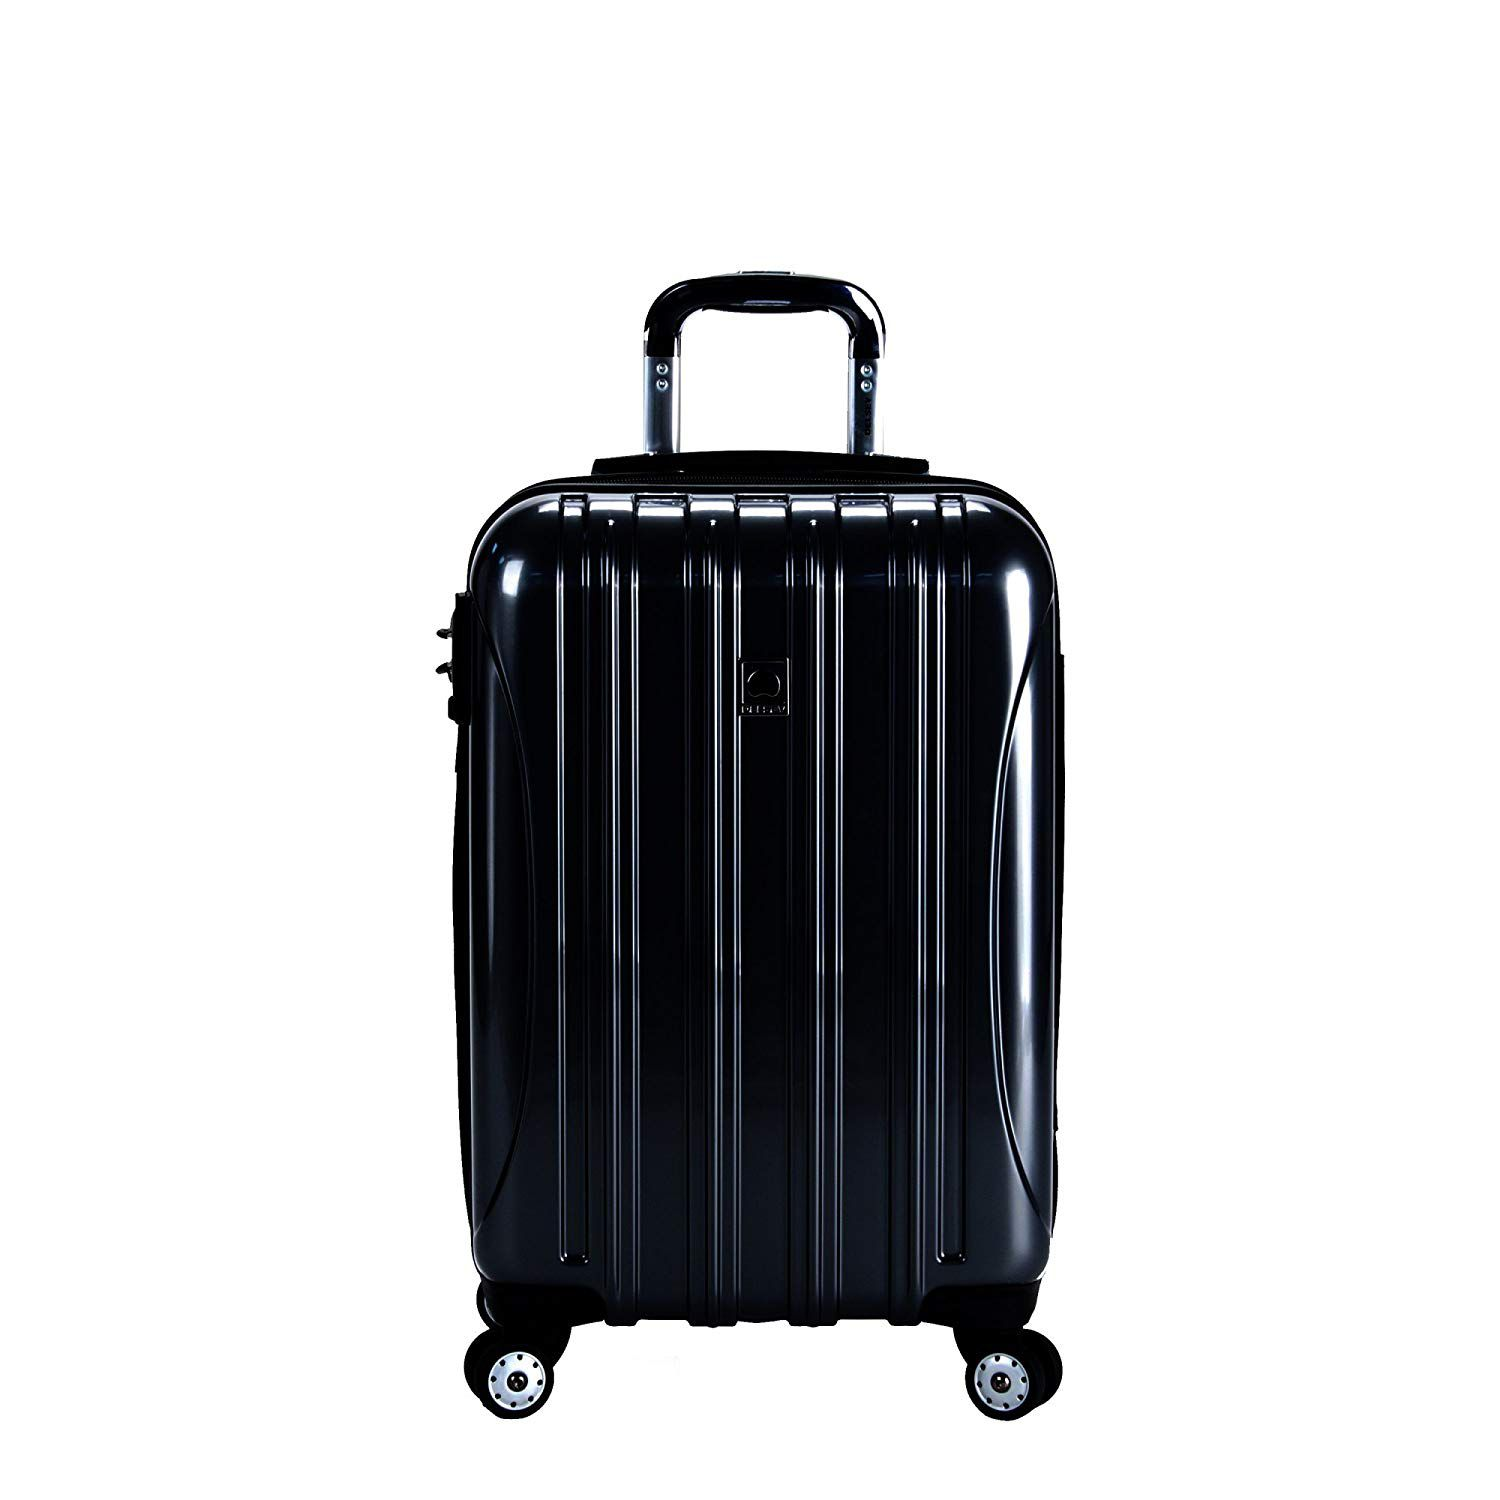 8962a639ff The 5 Best Delsey Luggage Items of 2019